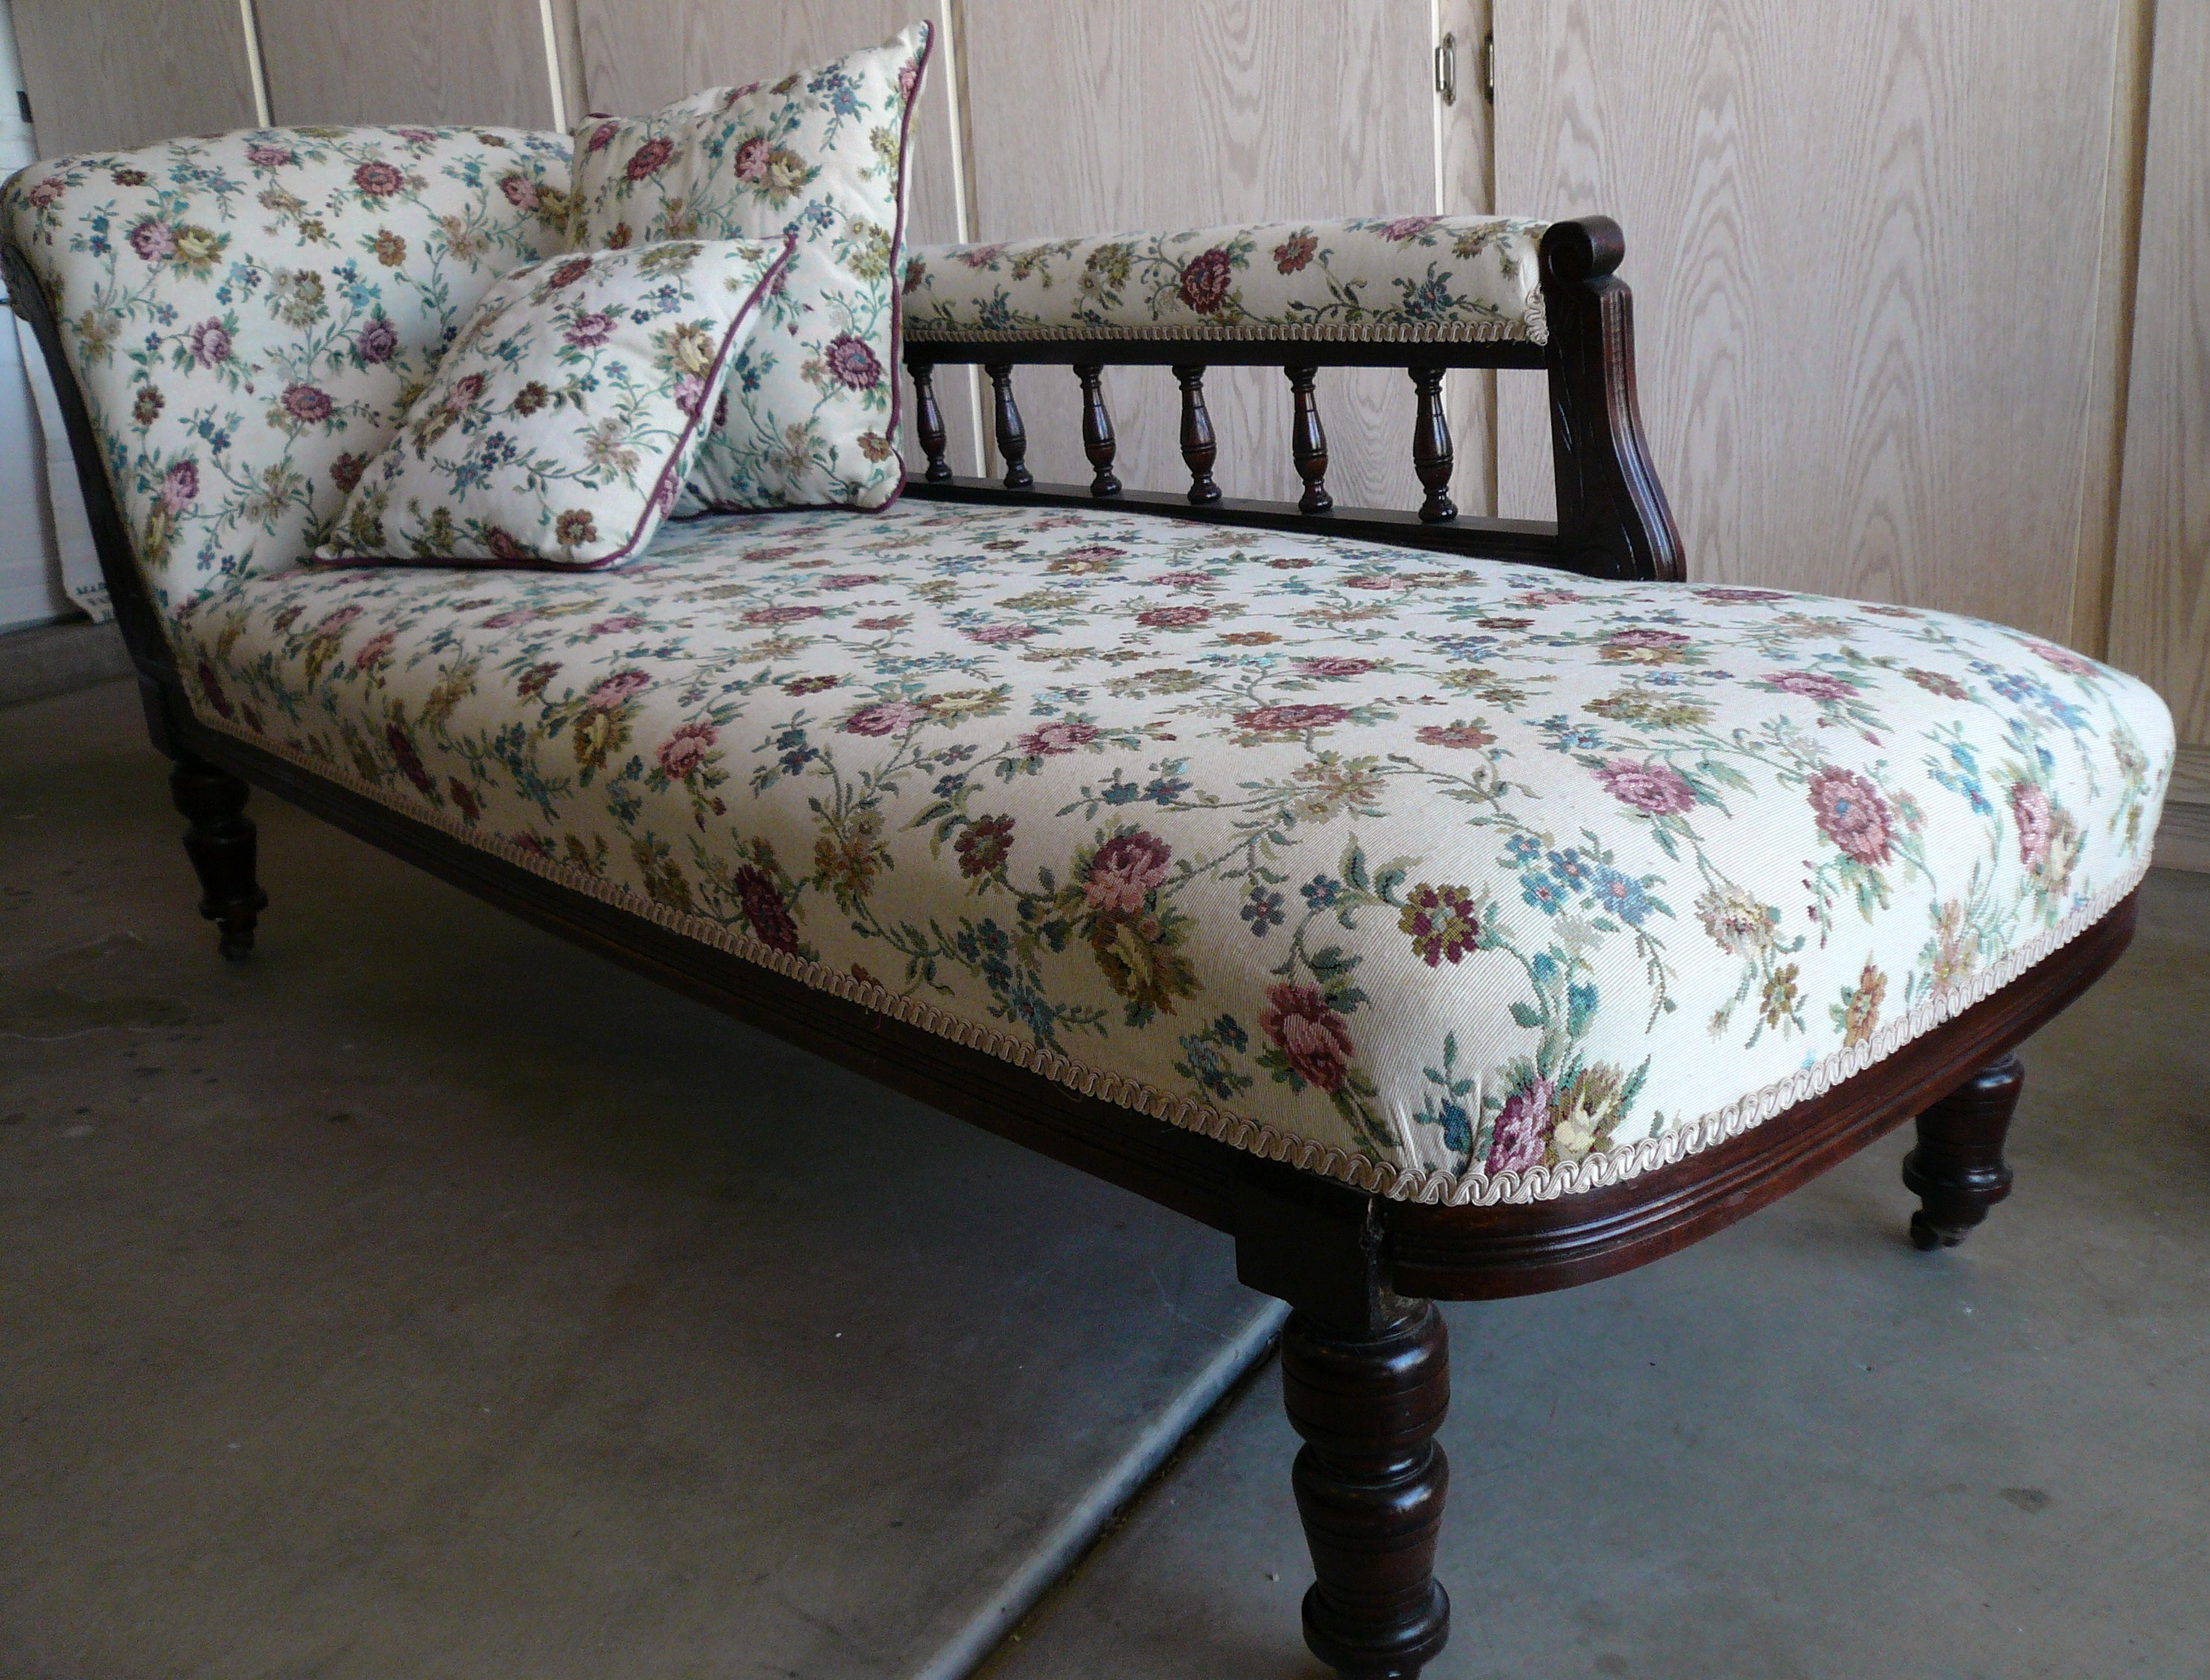 Chaise lounge 650 for sale classifieds for Antique chaise for sale